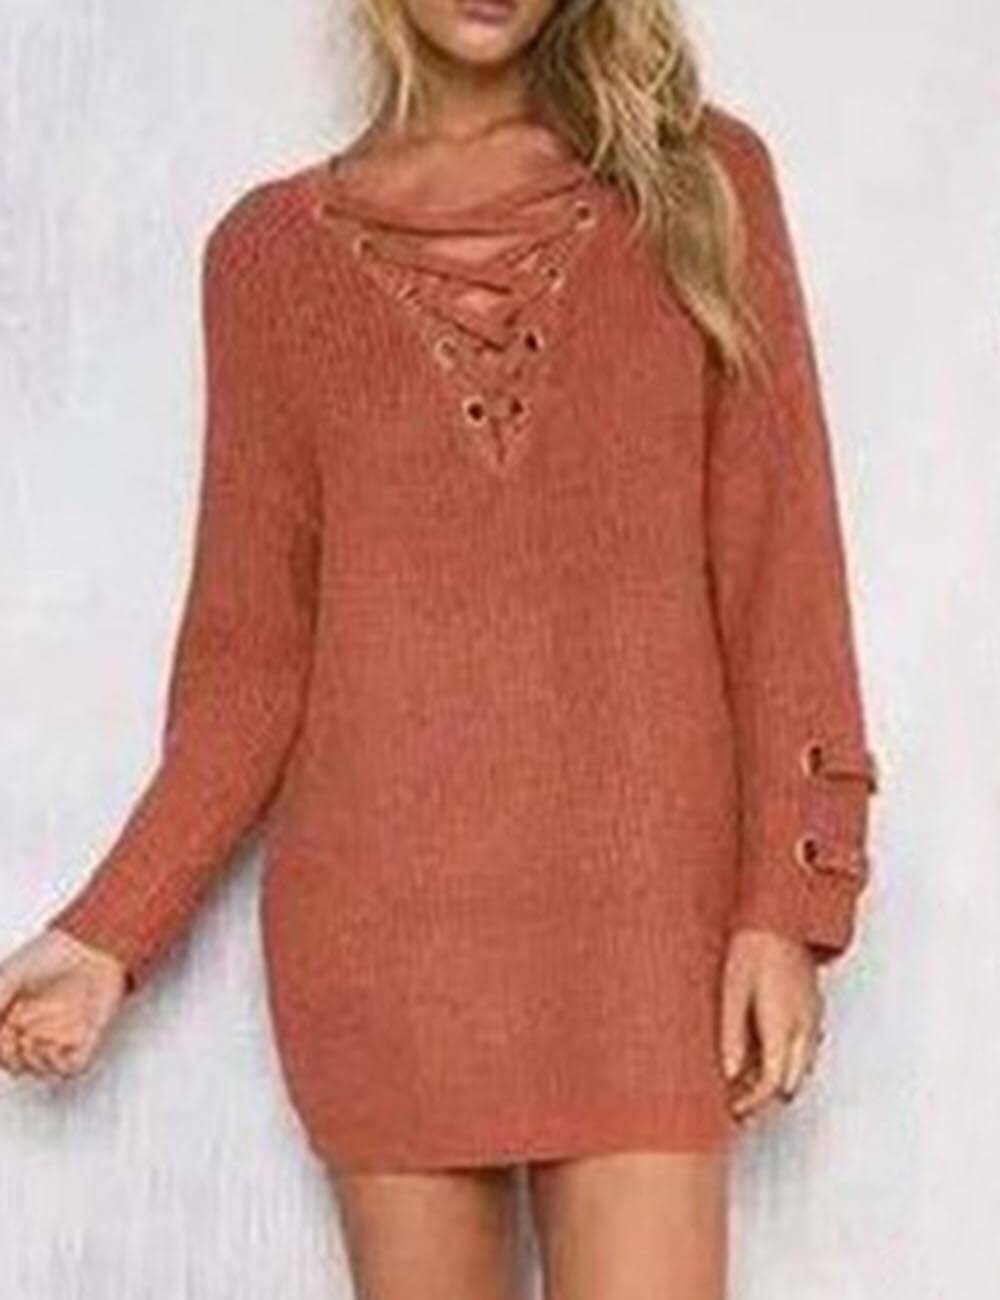 Women's Fall Lace Up Oversized Free Size Loose Fit Knitted Long Tunic Tops Casual Sweater Dress